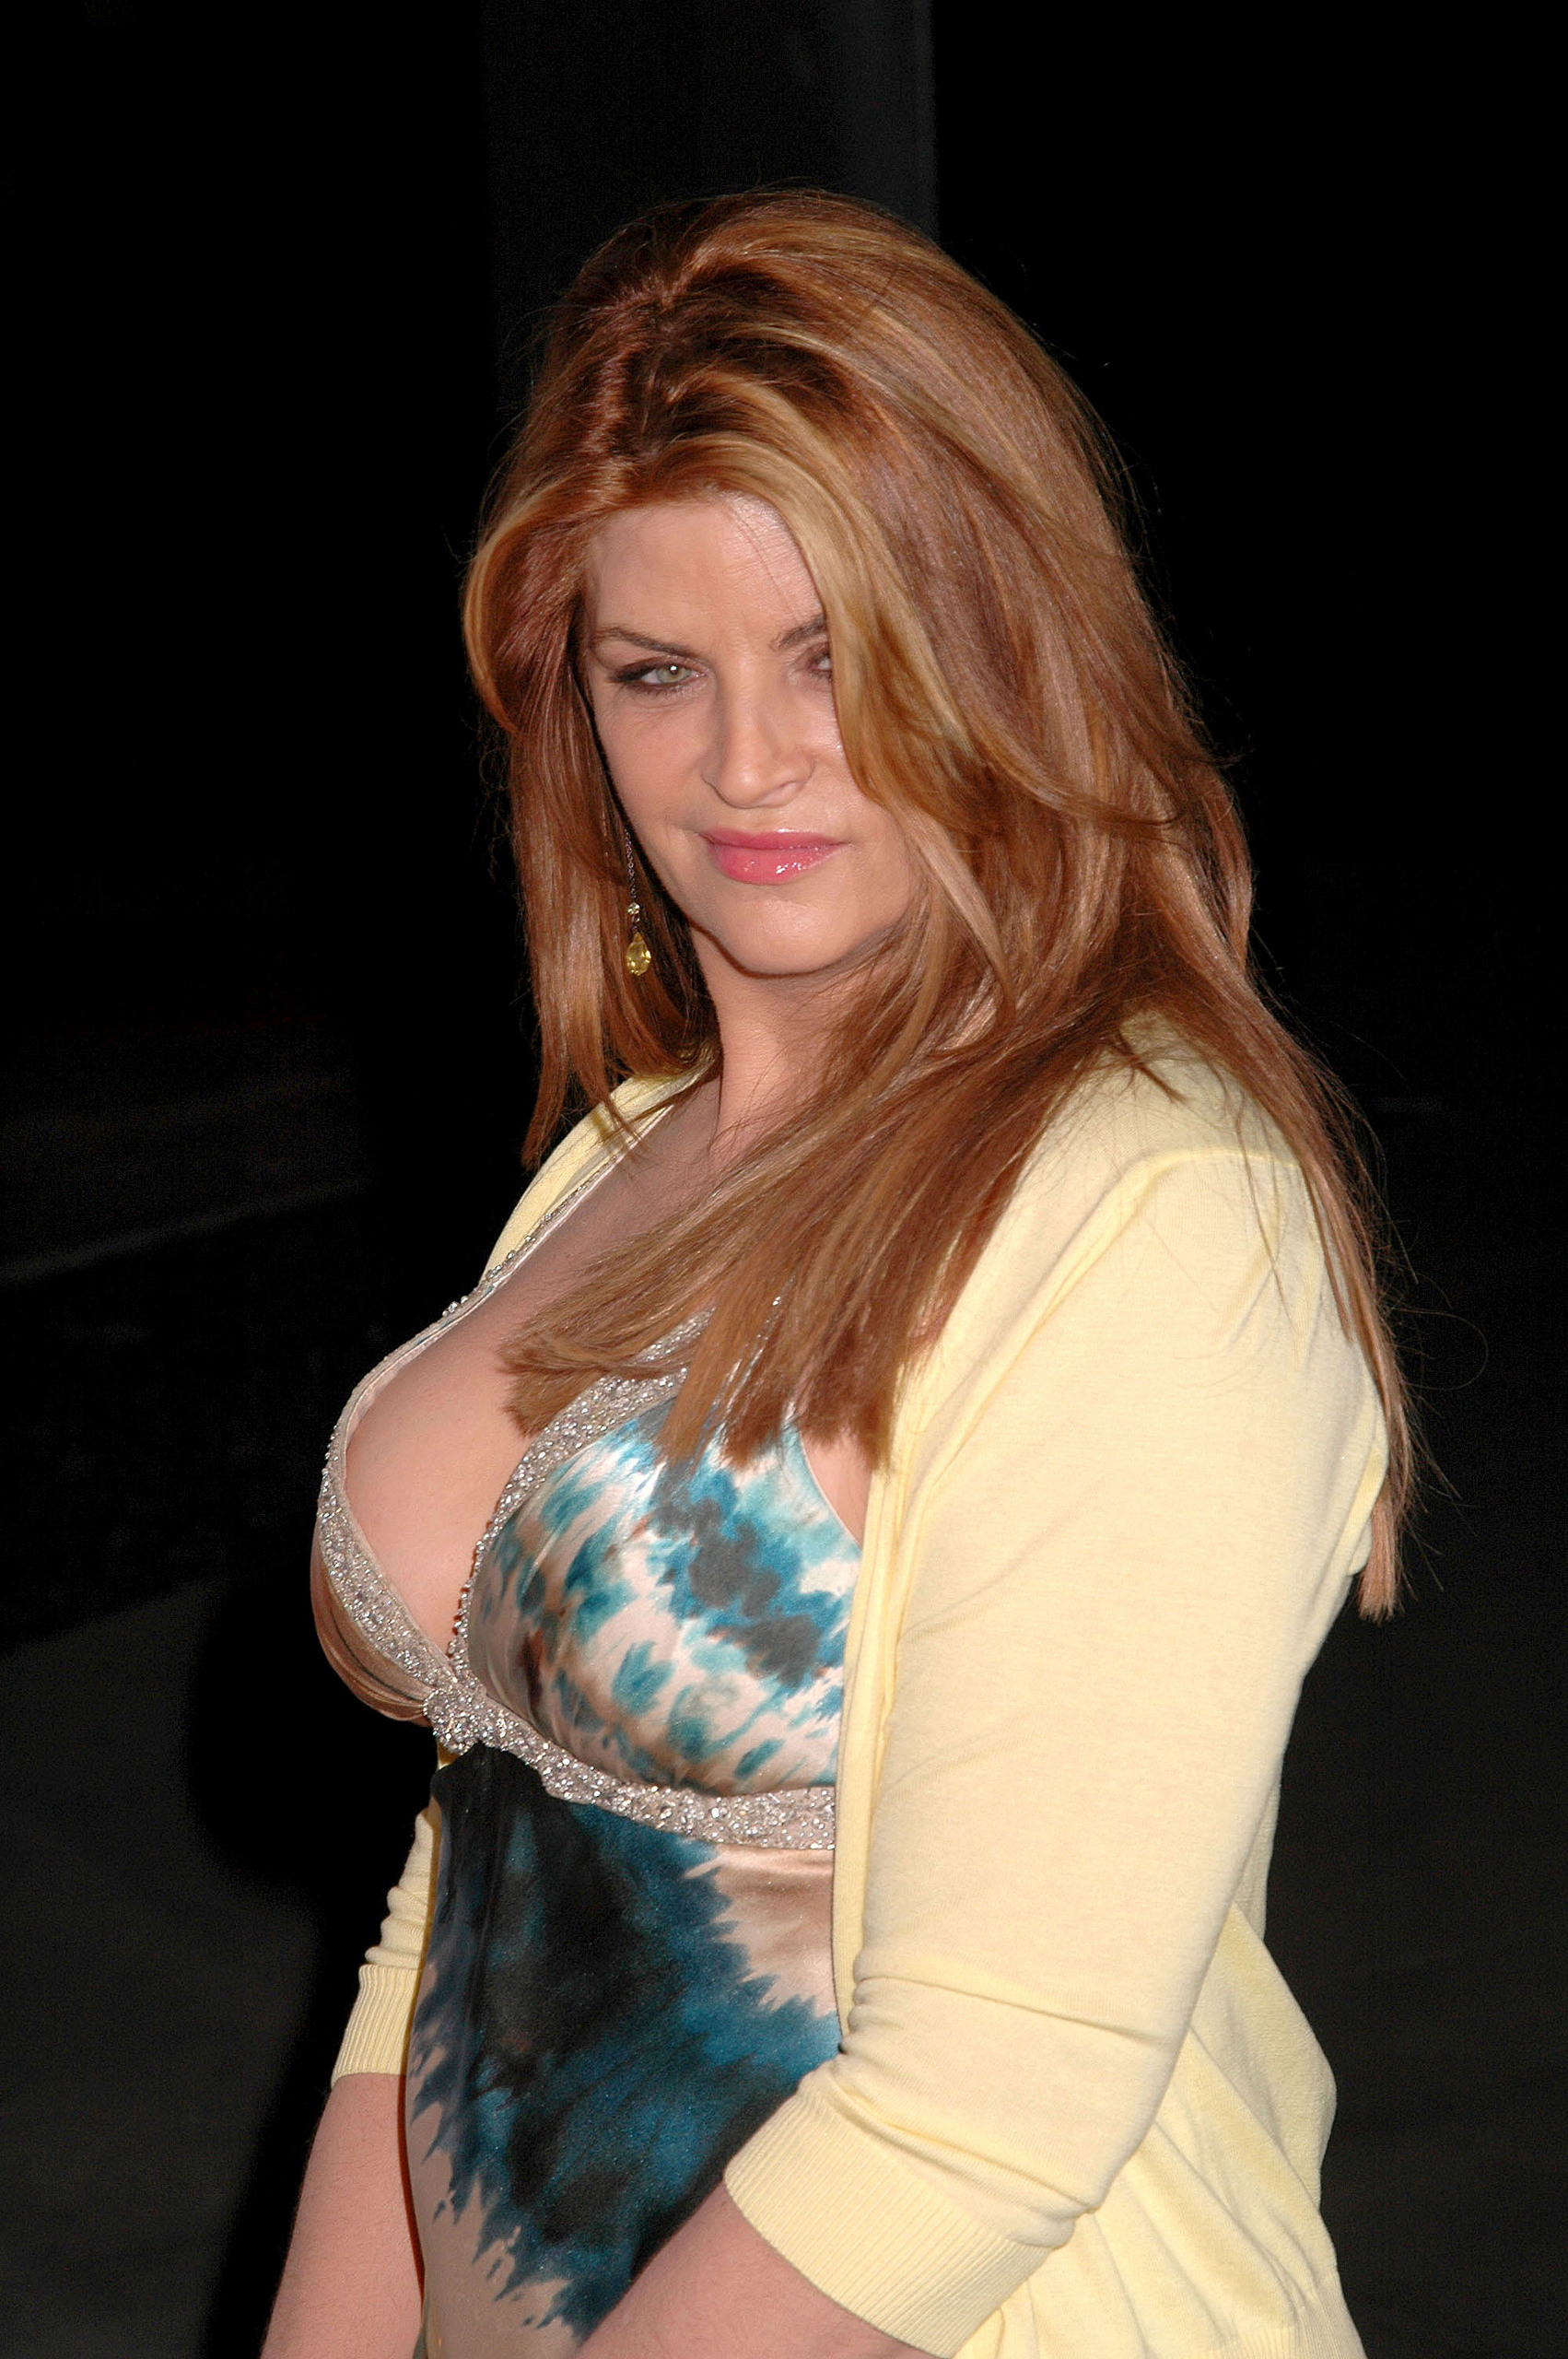 Kirstie Alley Images Fat Actress Premiere Hd Wallpaper